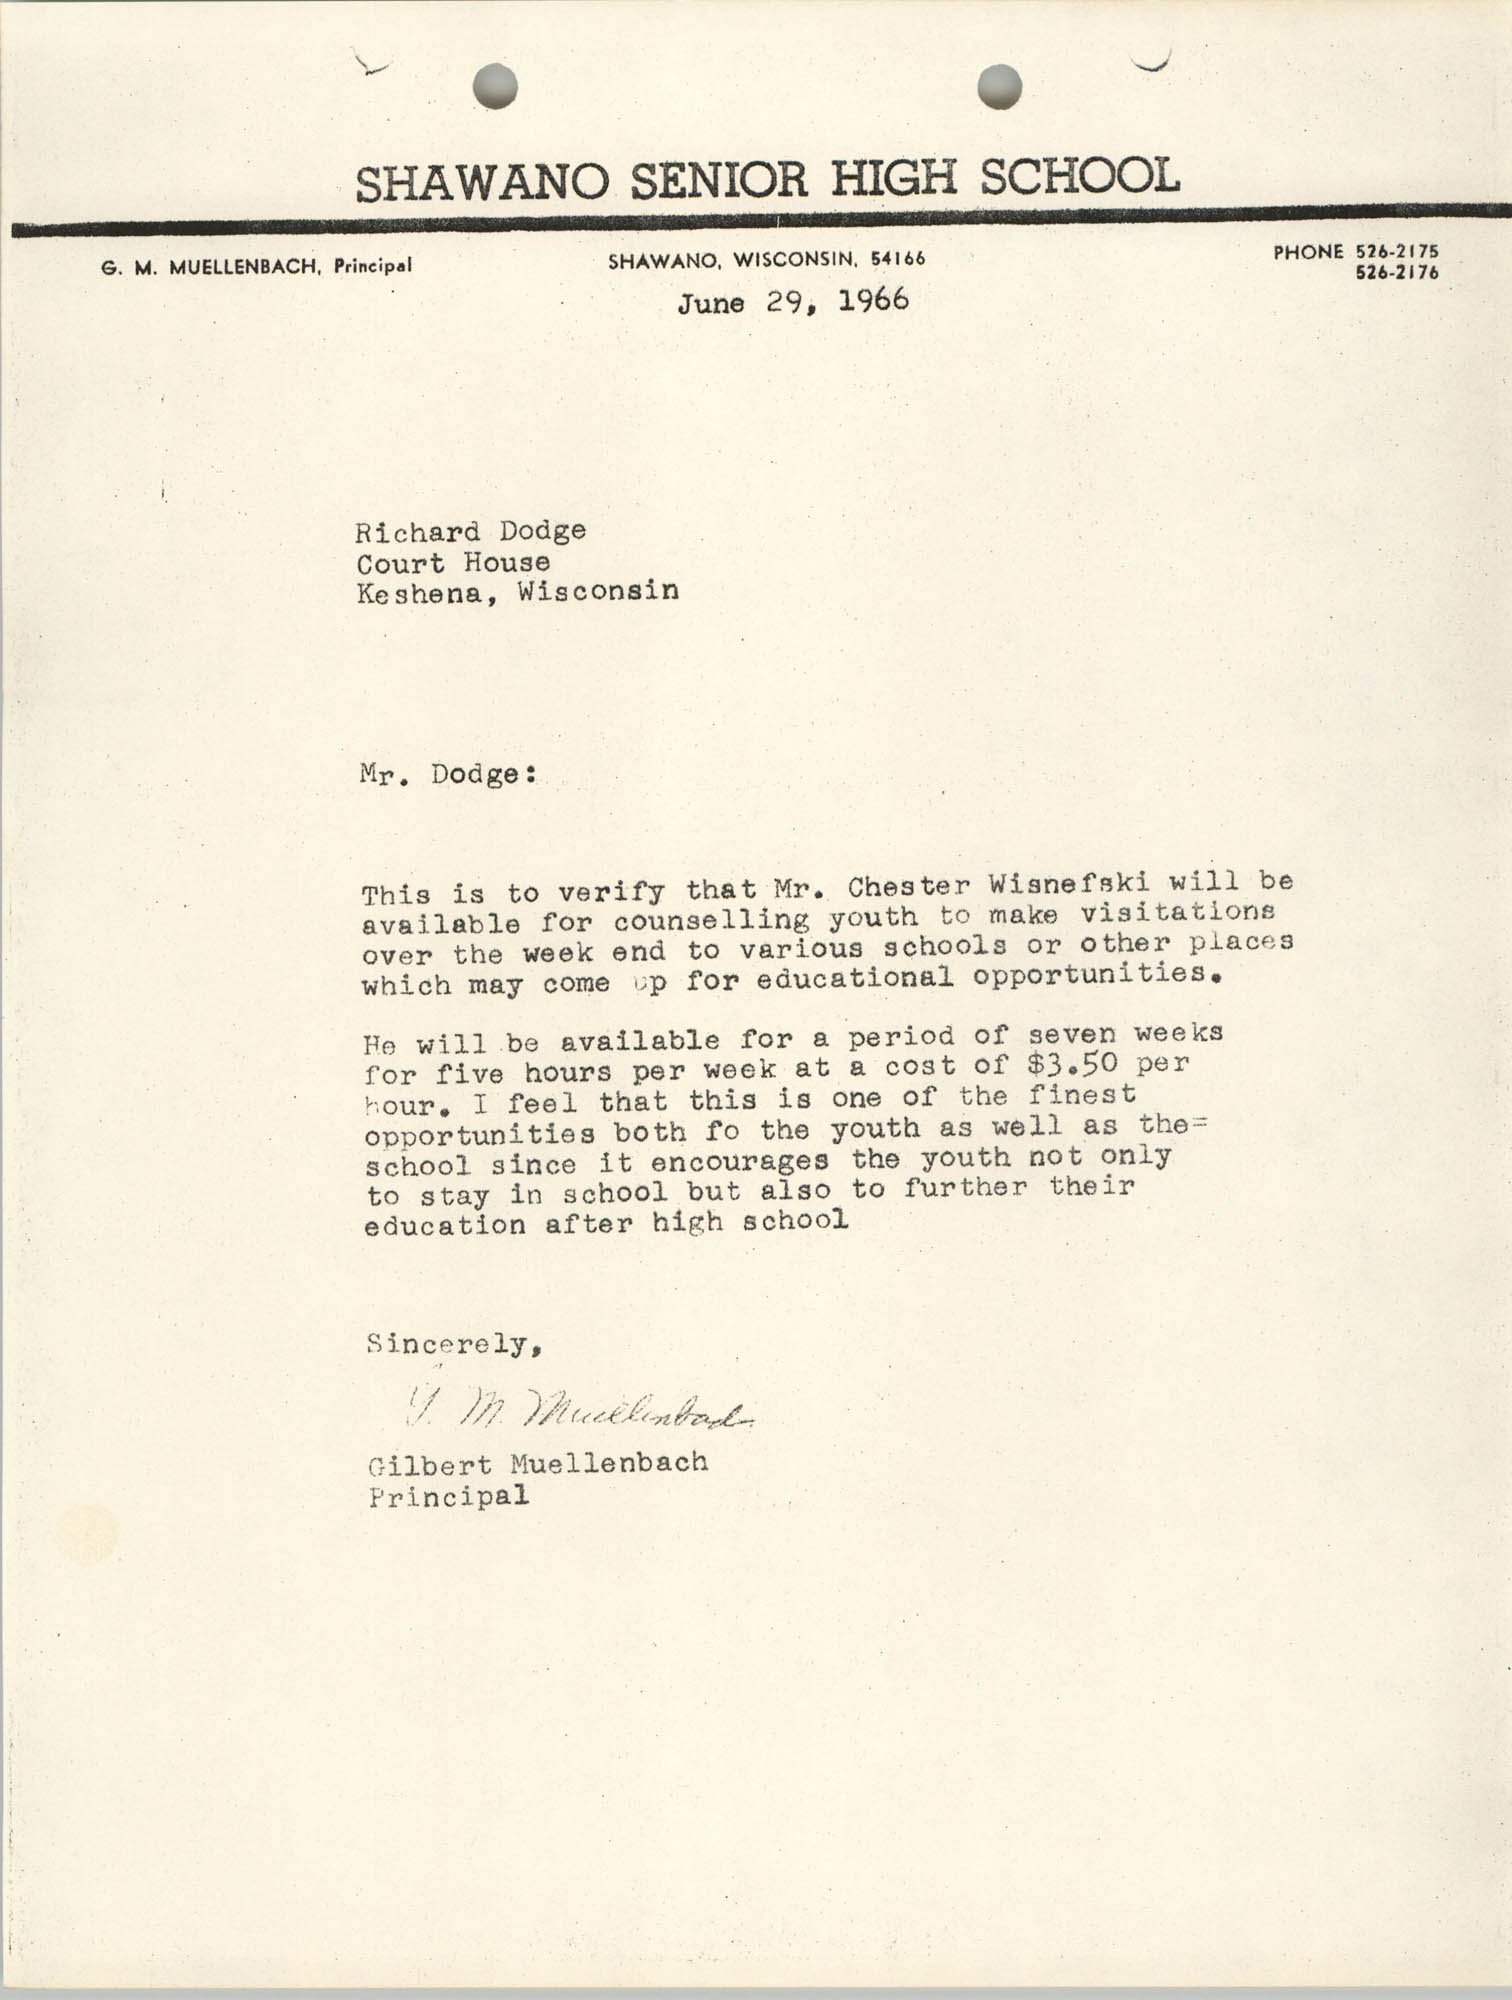 Letter from Gilbert Muellenbach to Richard Dodge, June 29, 1966